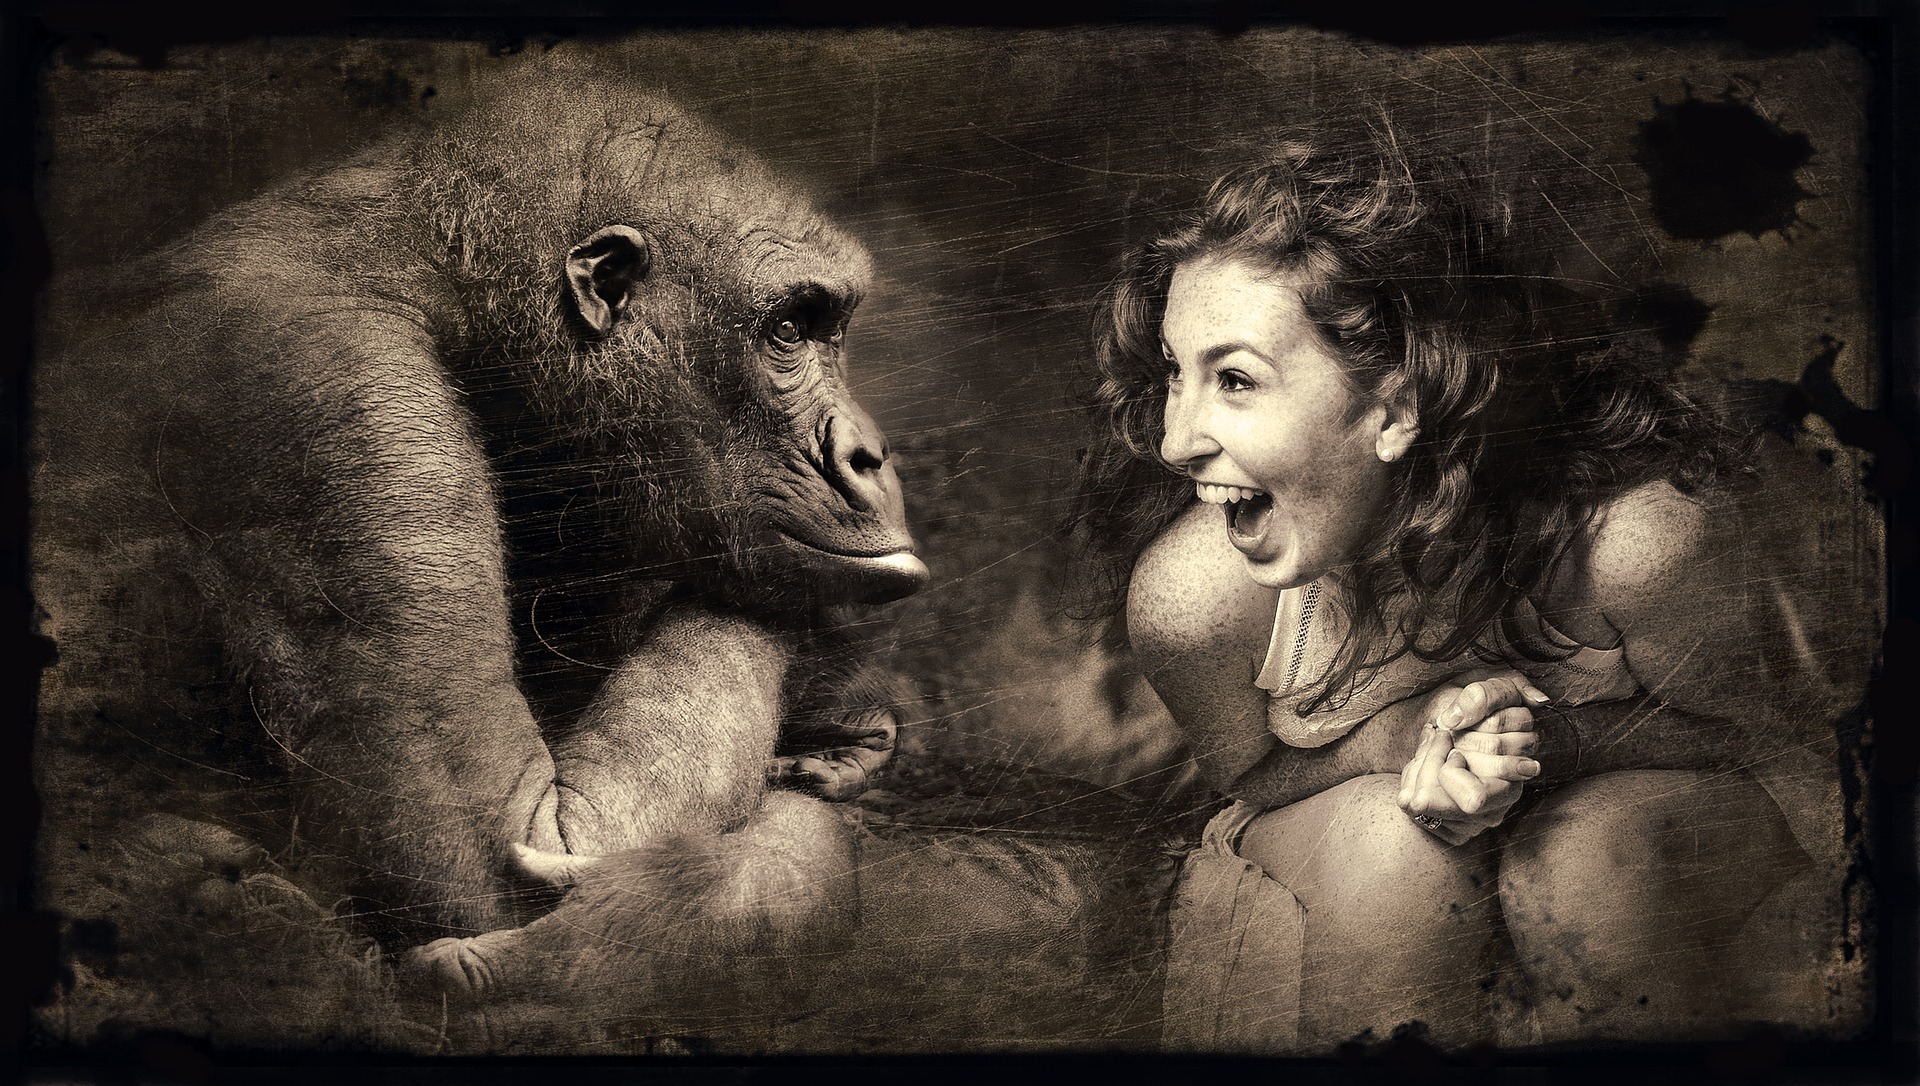 woman emoting to a gorilla